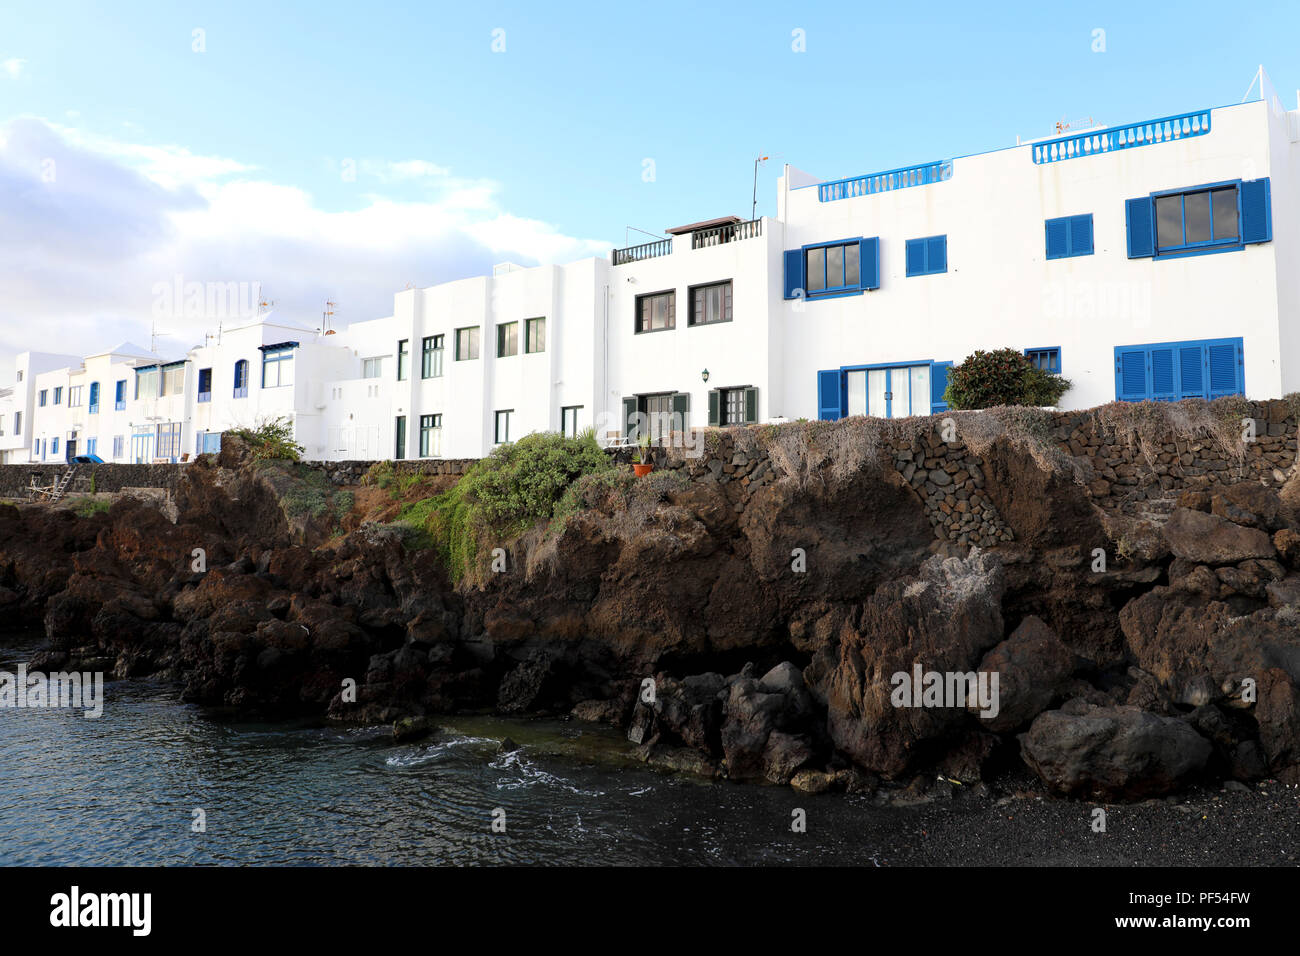 Typical canarian white houses in Punta Mujeres on sea rocks, Lanzarote Island Stock Photo